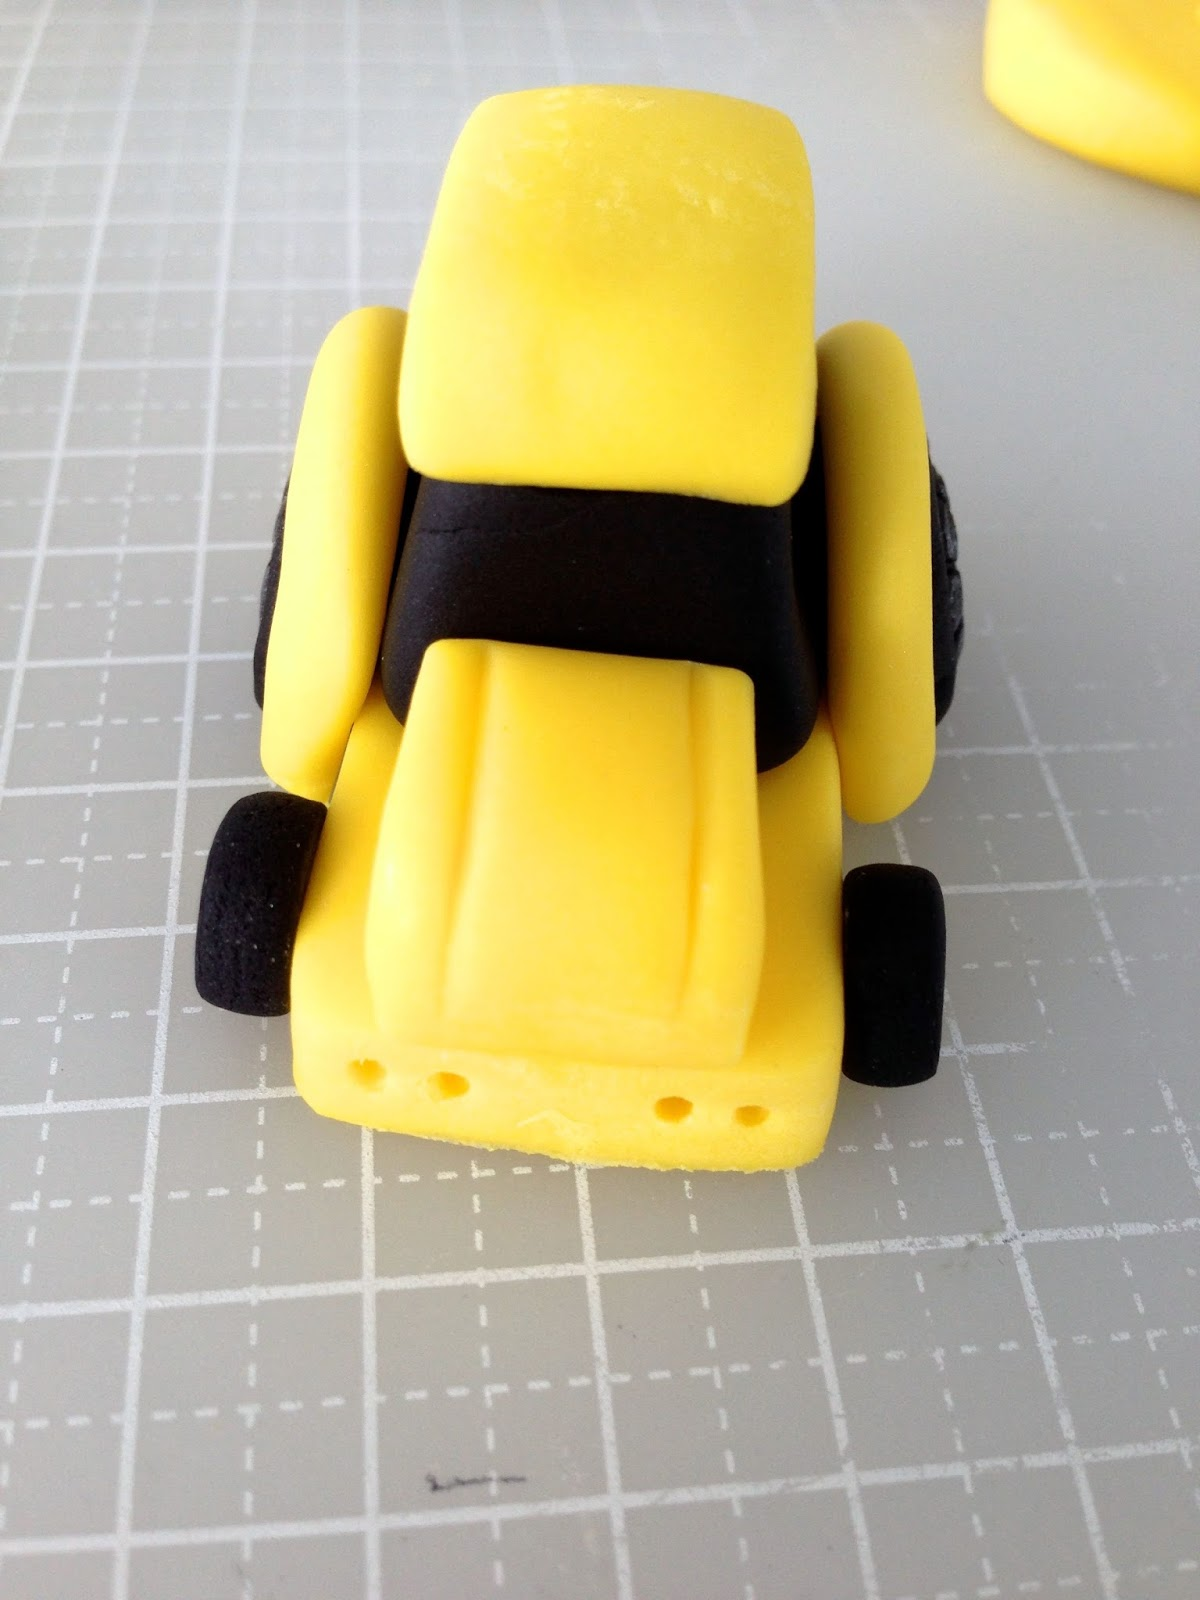 Bake A Boo The Little Yellow Digger Truck Cake Topper